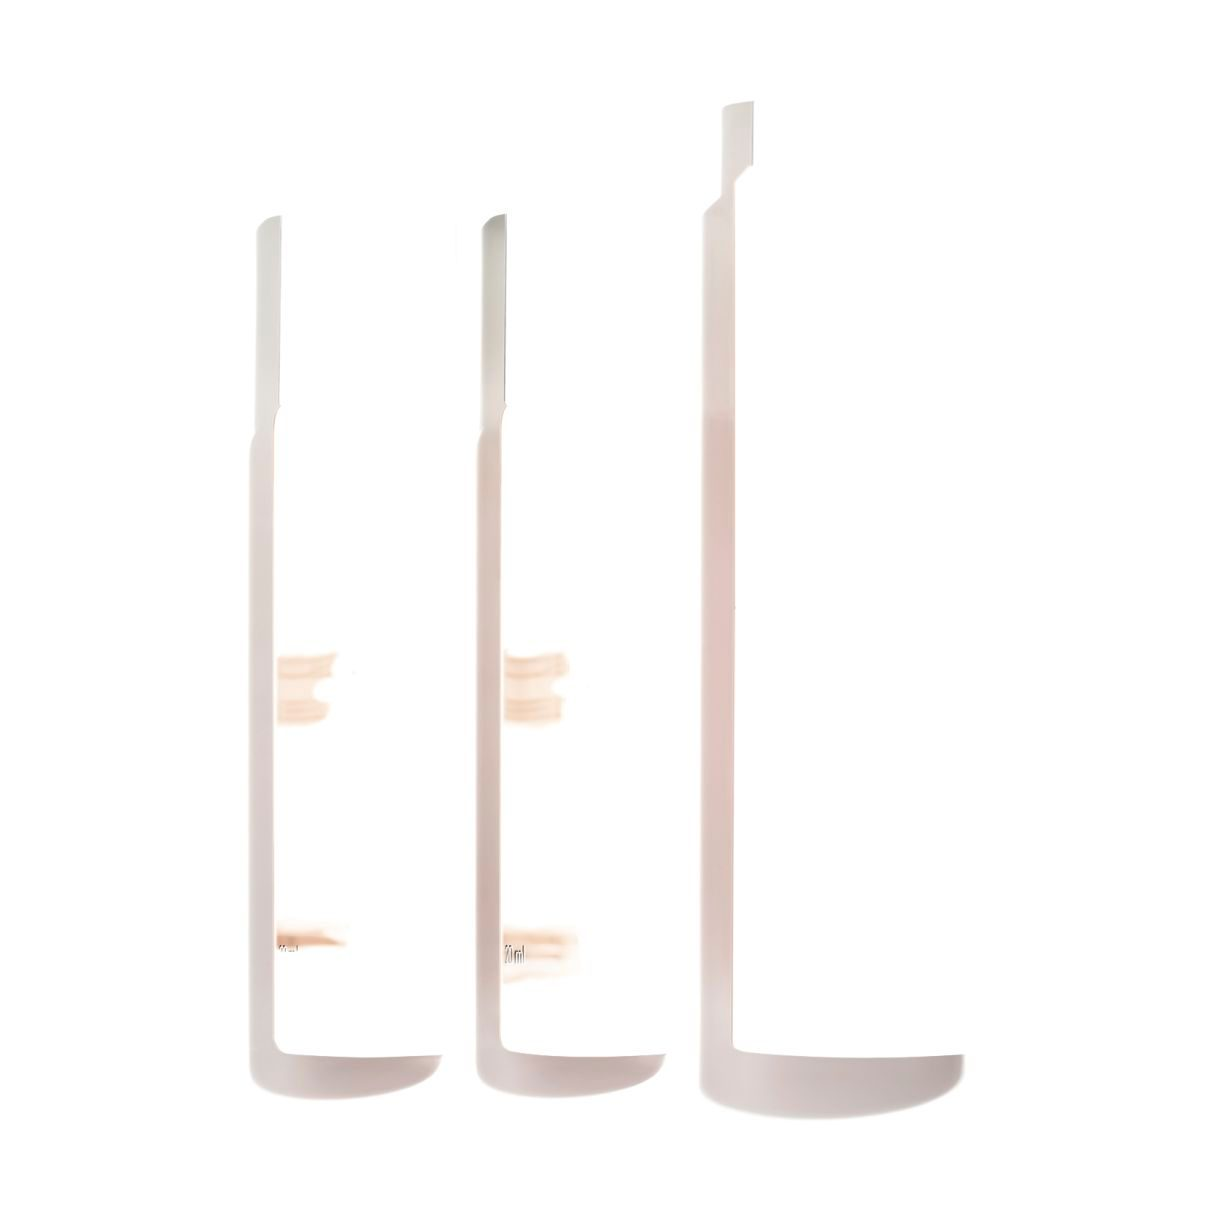 CHANCE EAU VIVE TWIST AND SPRAY EAU DE TOILETTE 3x20ml